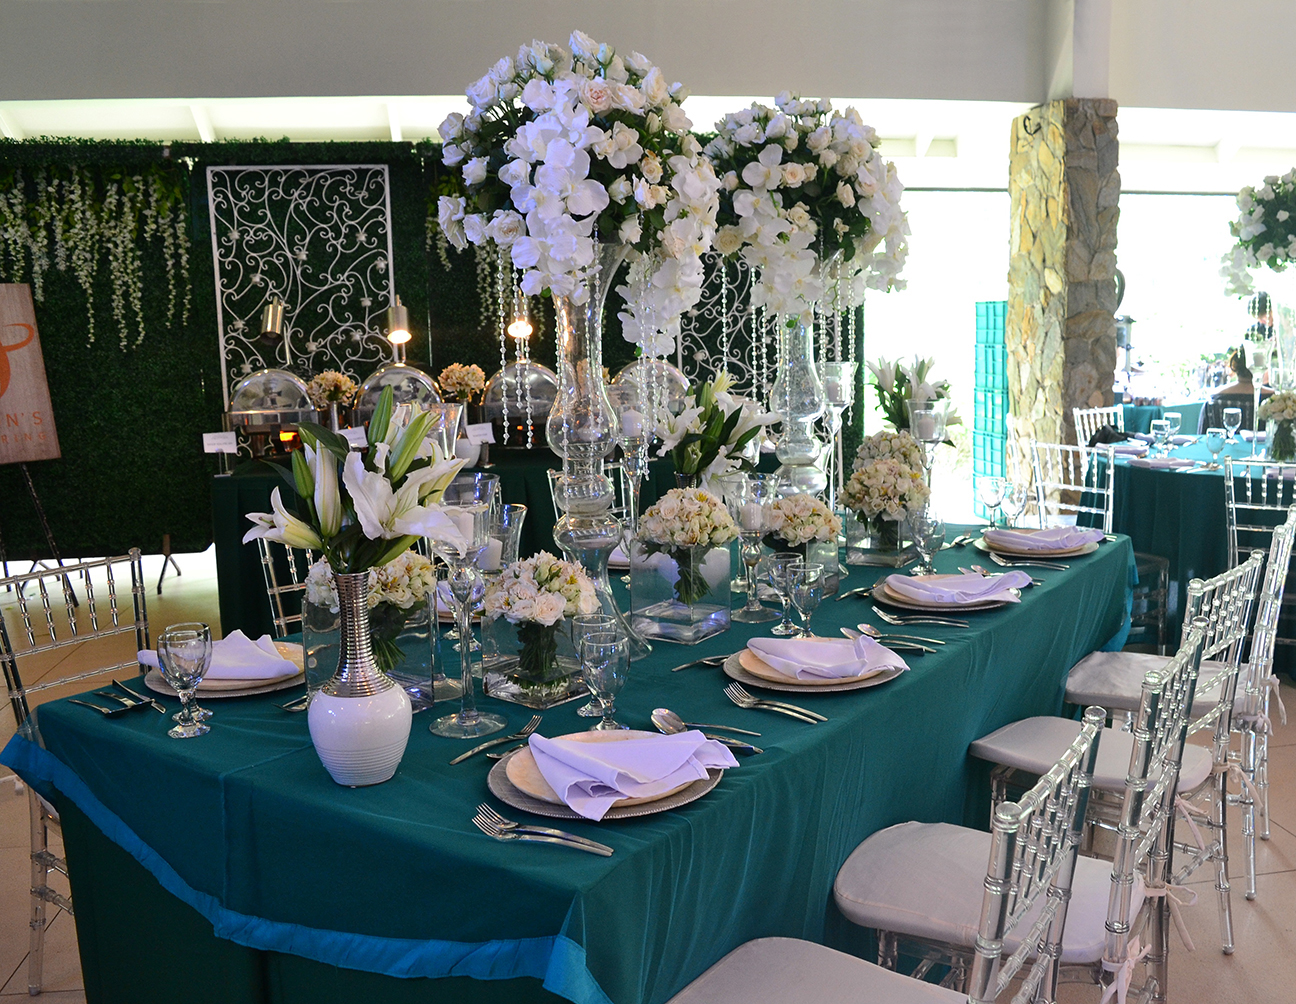 A wedding setup by Hizon's Catering